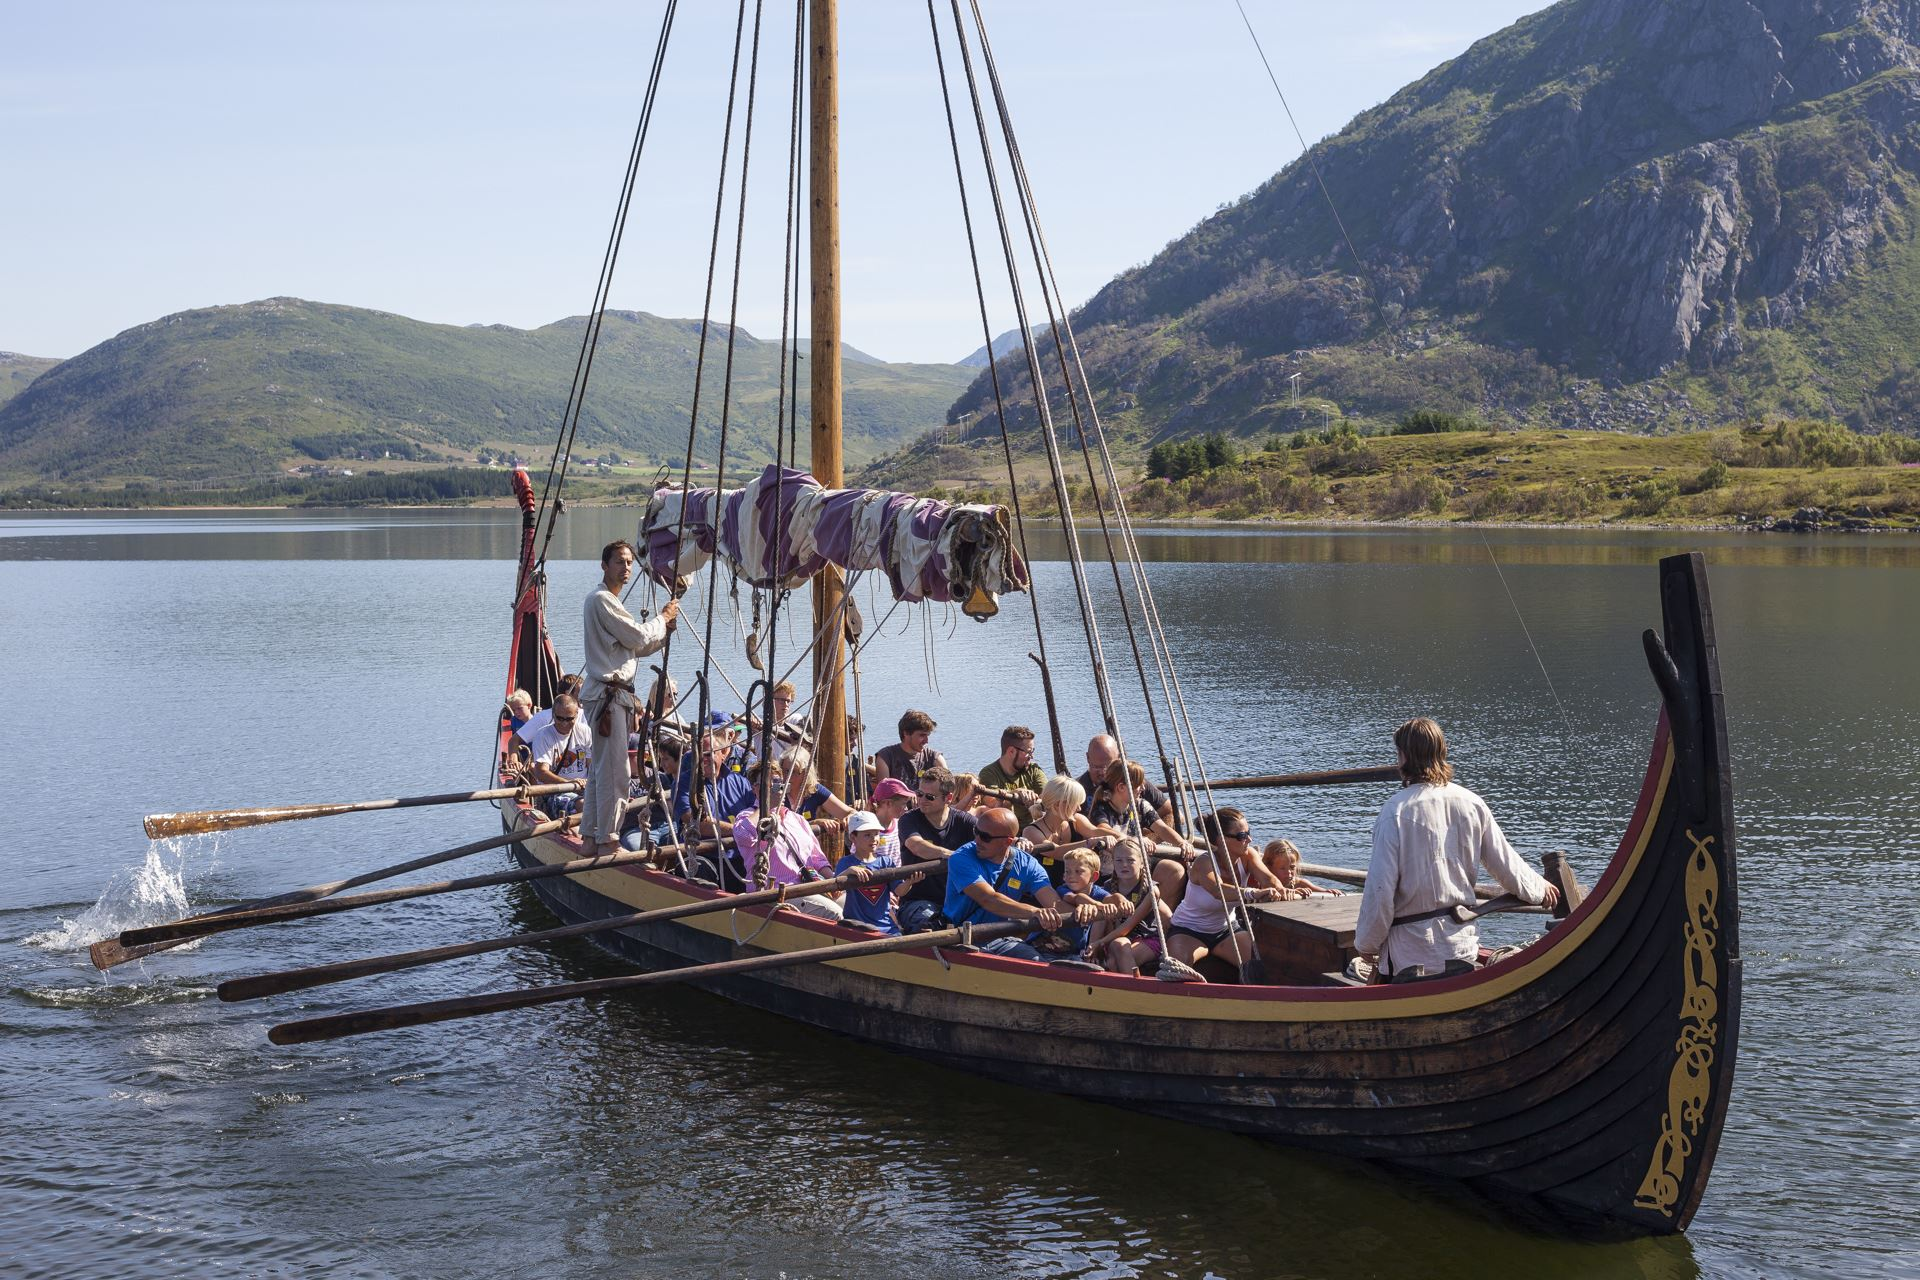 Row the Viking Ship at Lofotr Vikingmuseum!